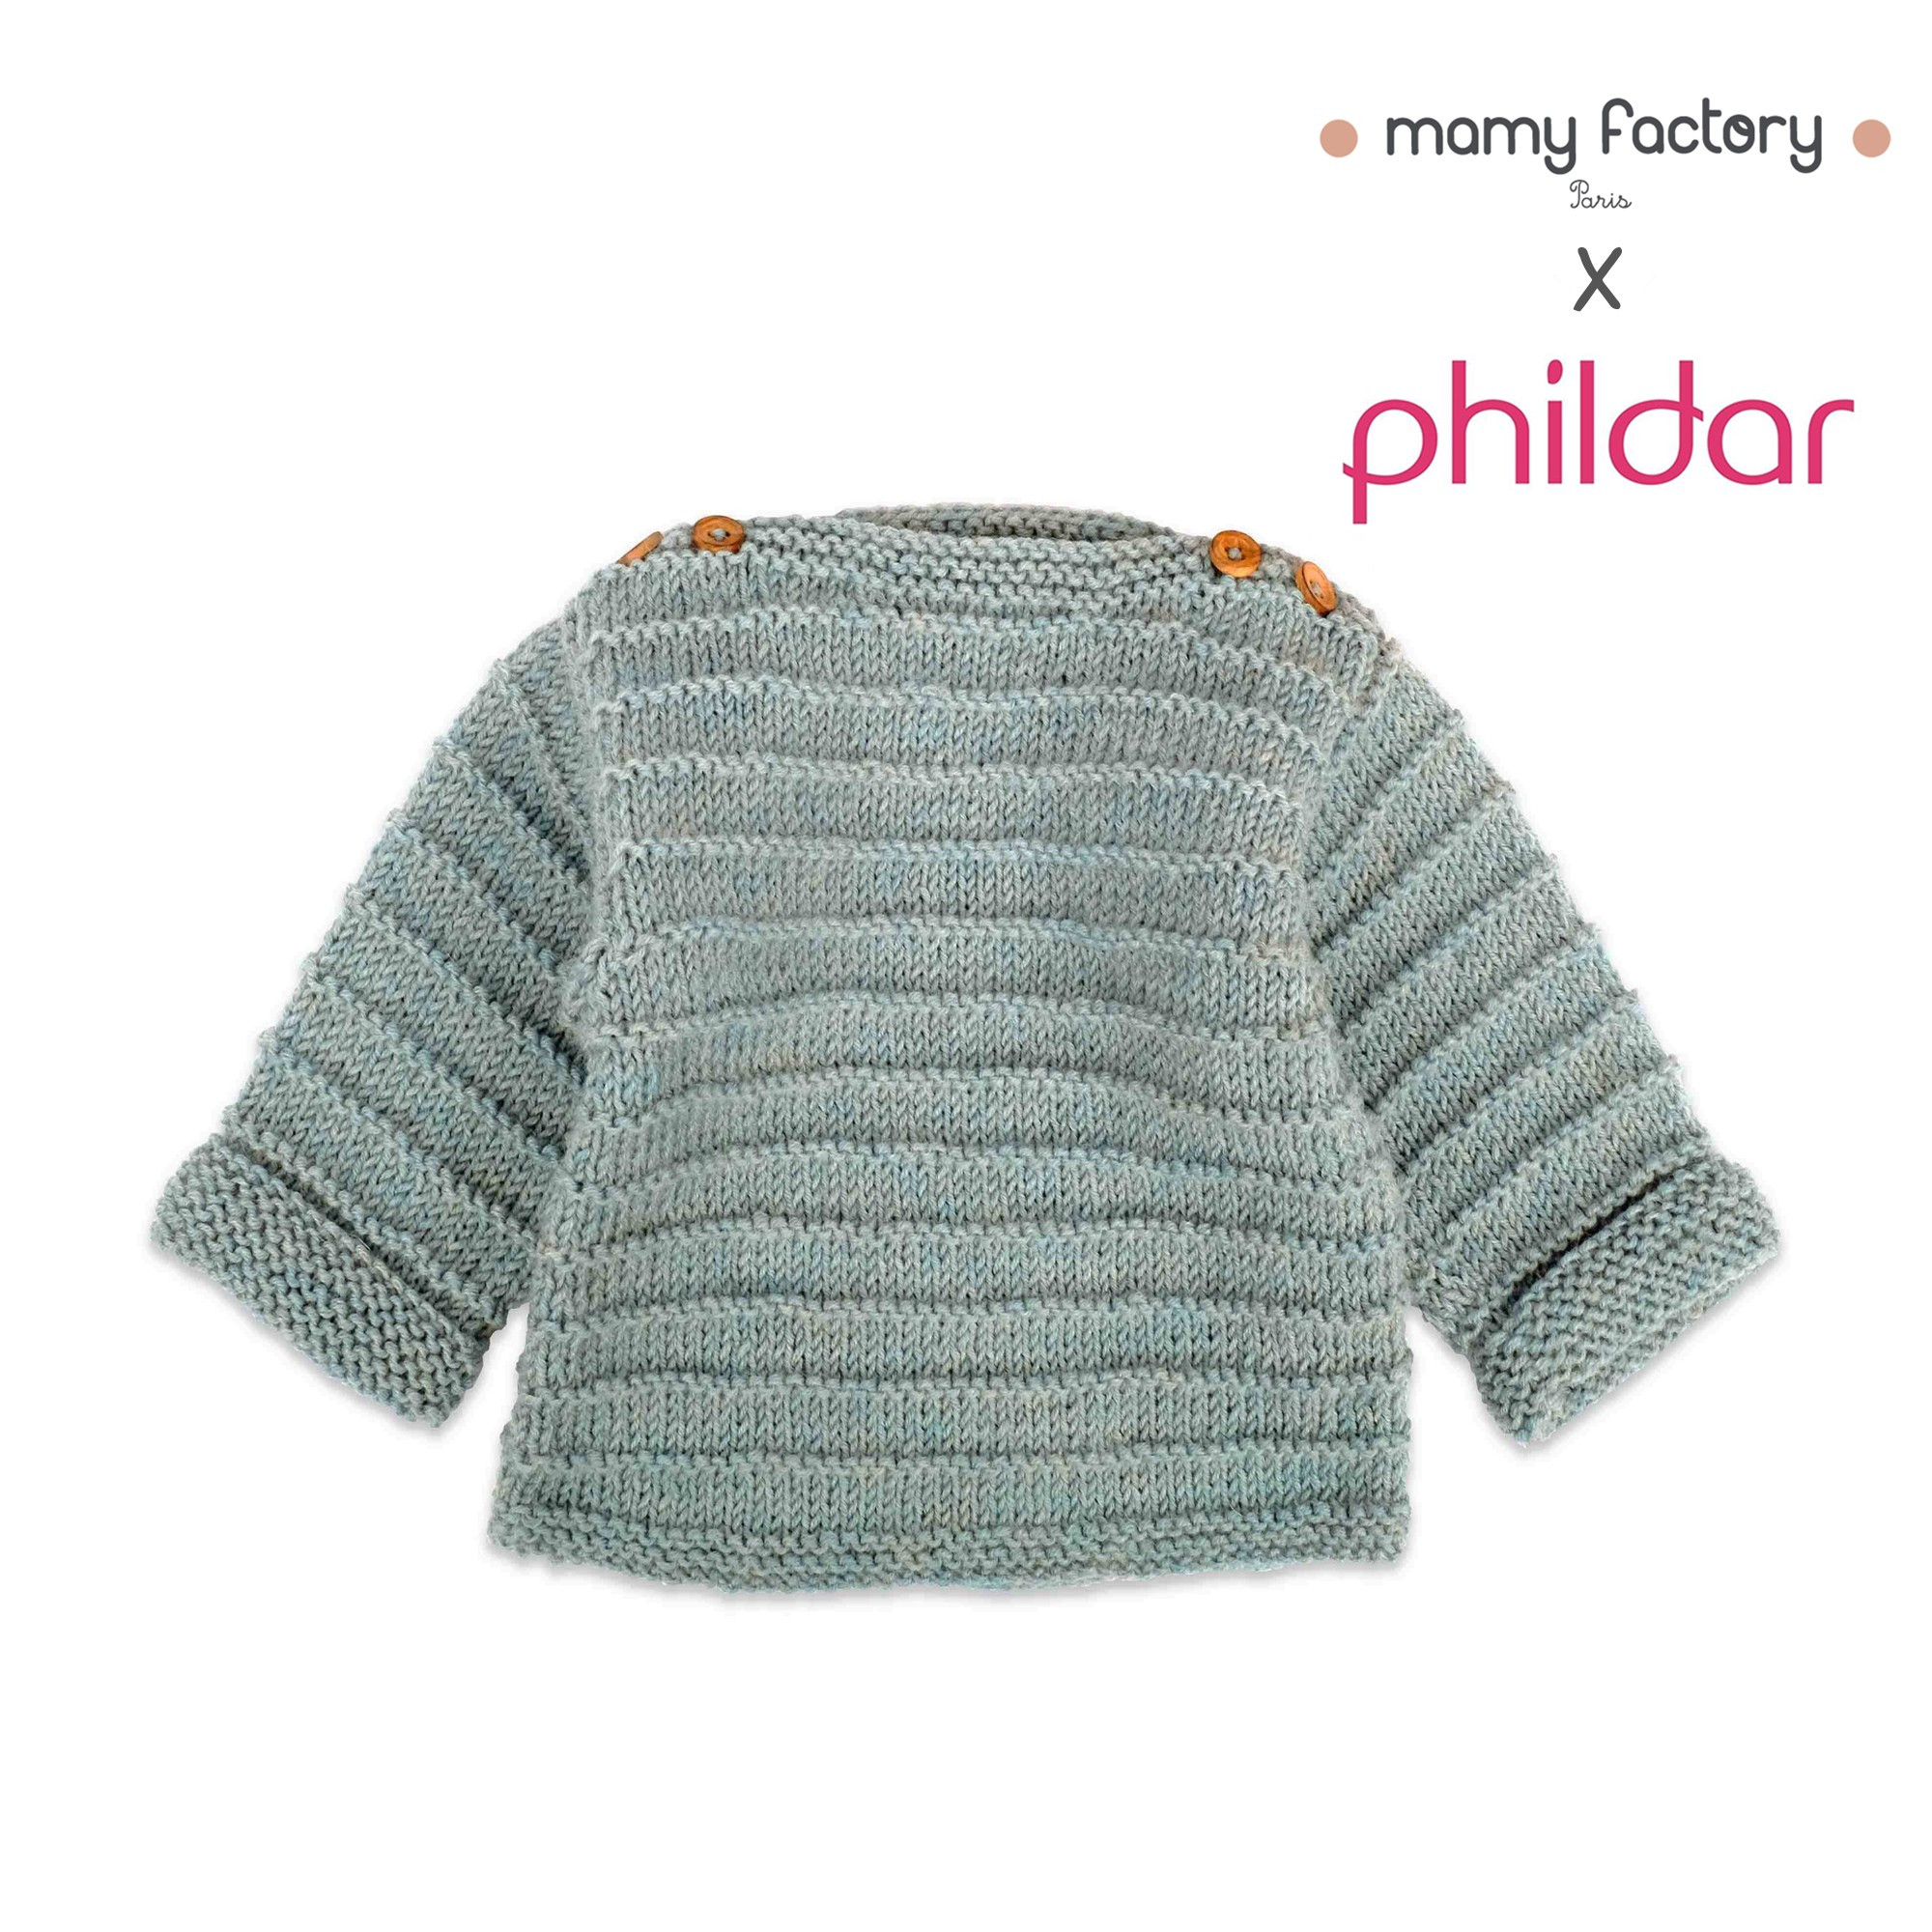 Knitting Kits Fresh Knitting Kit for A Baby Sweater In Merino Wool From 6 to Of Perfect 44 Images Knitting Kits